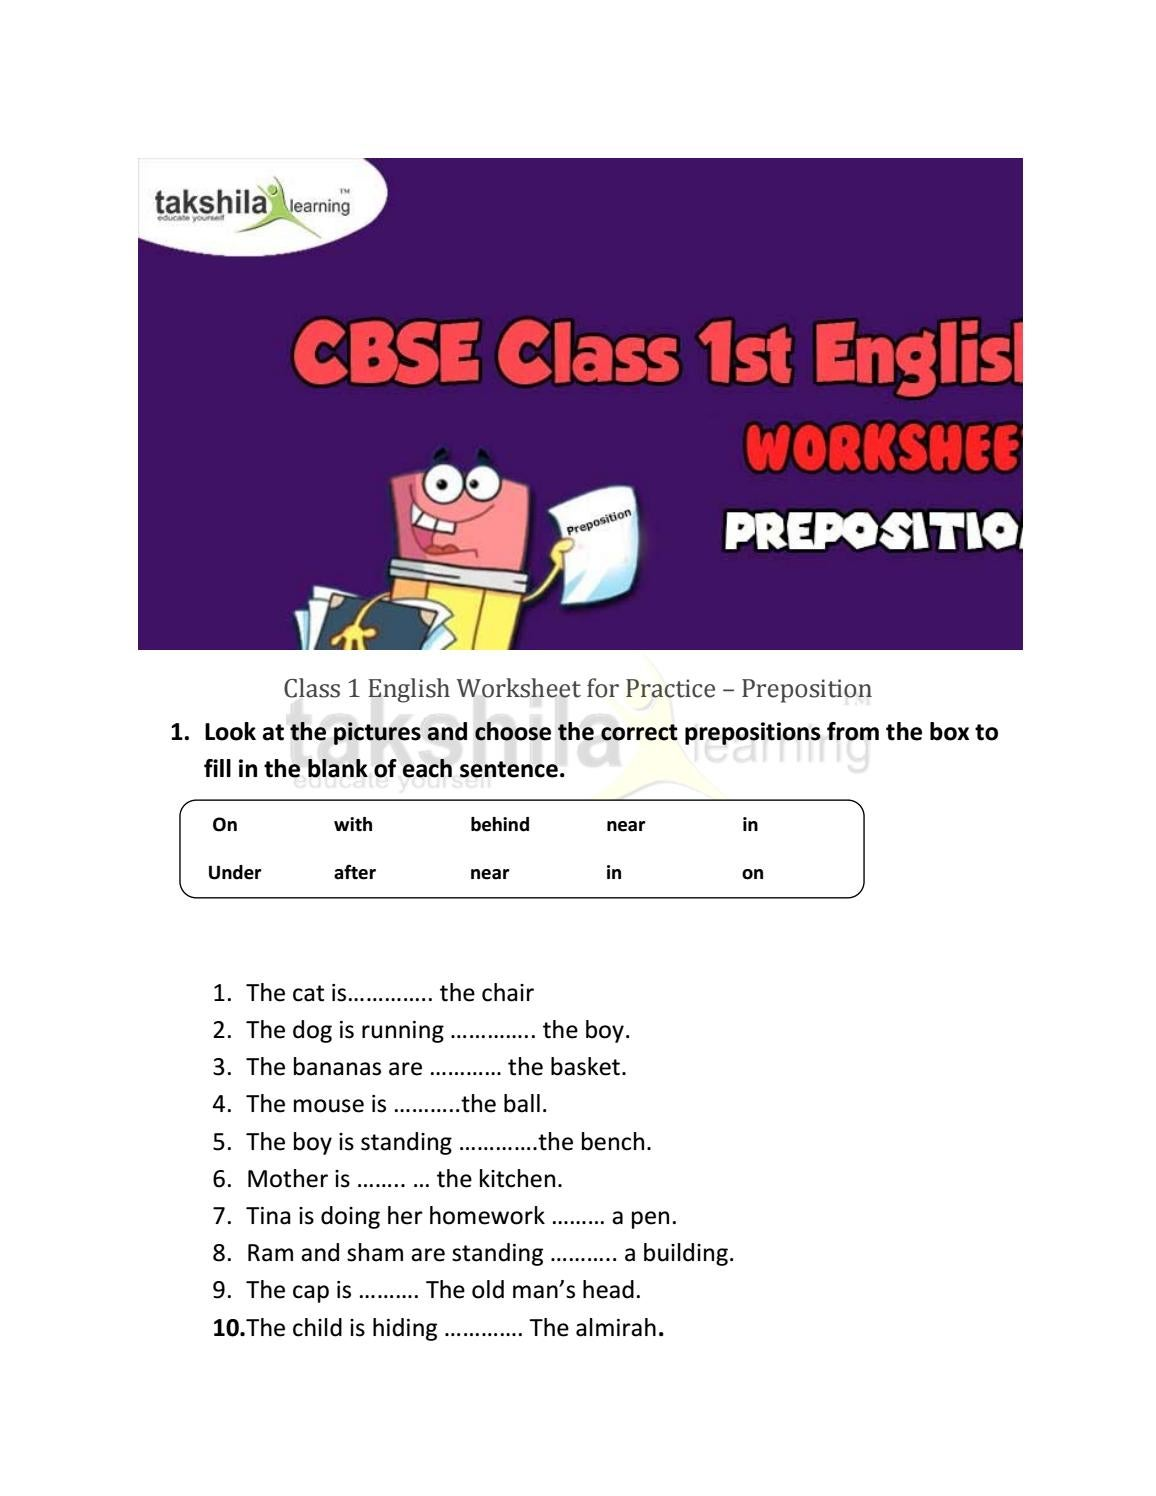 - Class 1 English Worksheet For Practice Preposition By Takshila